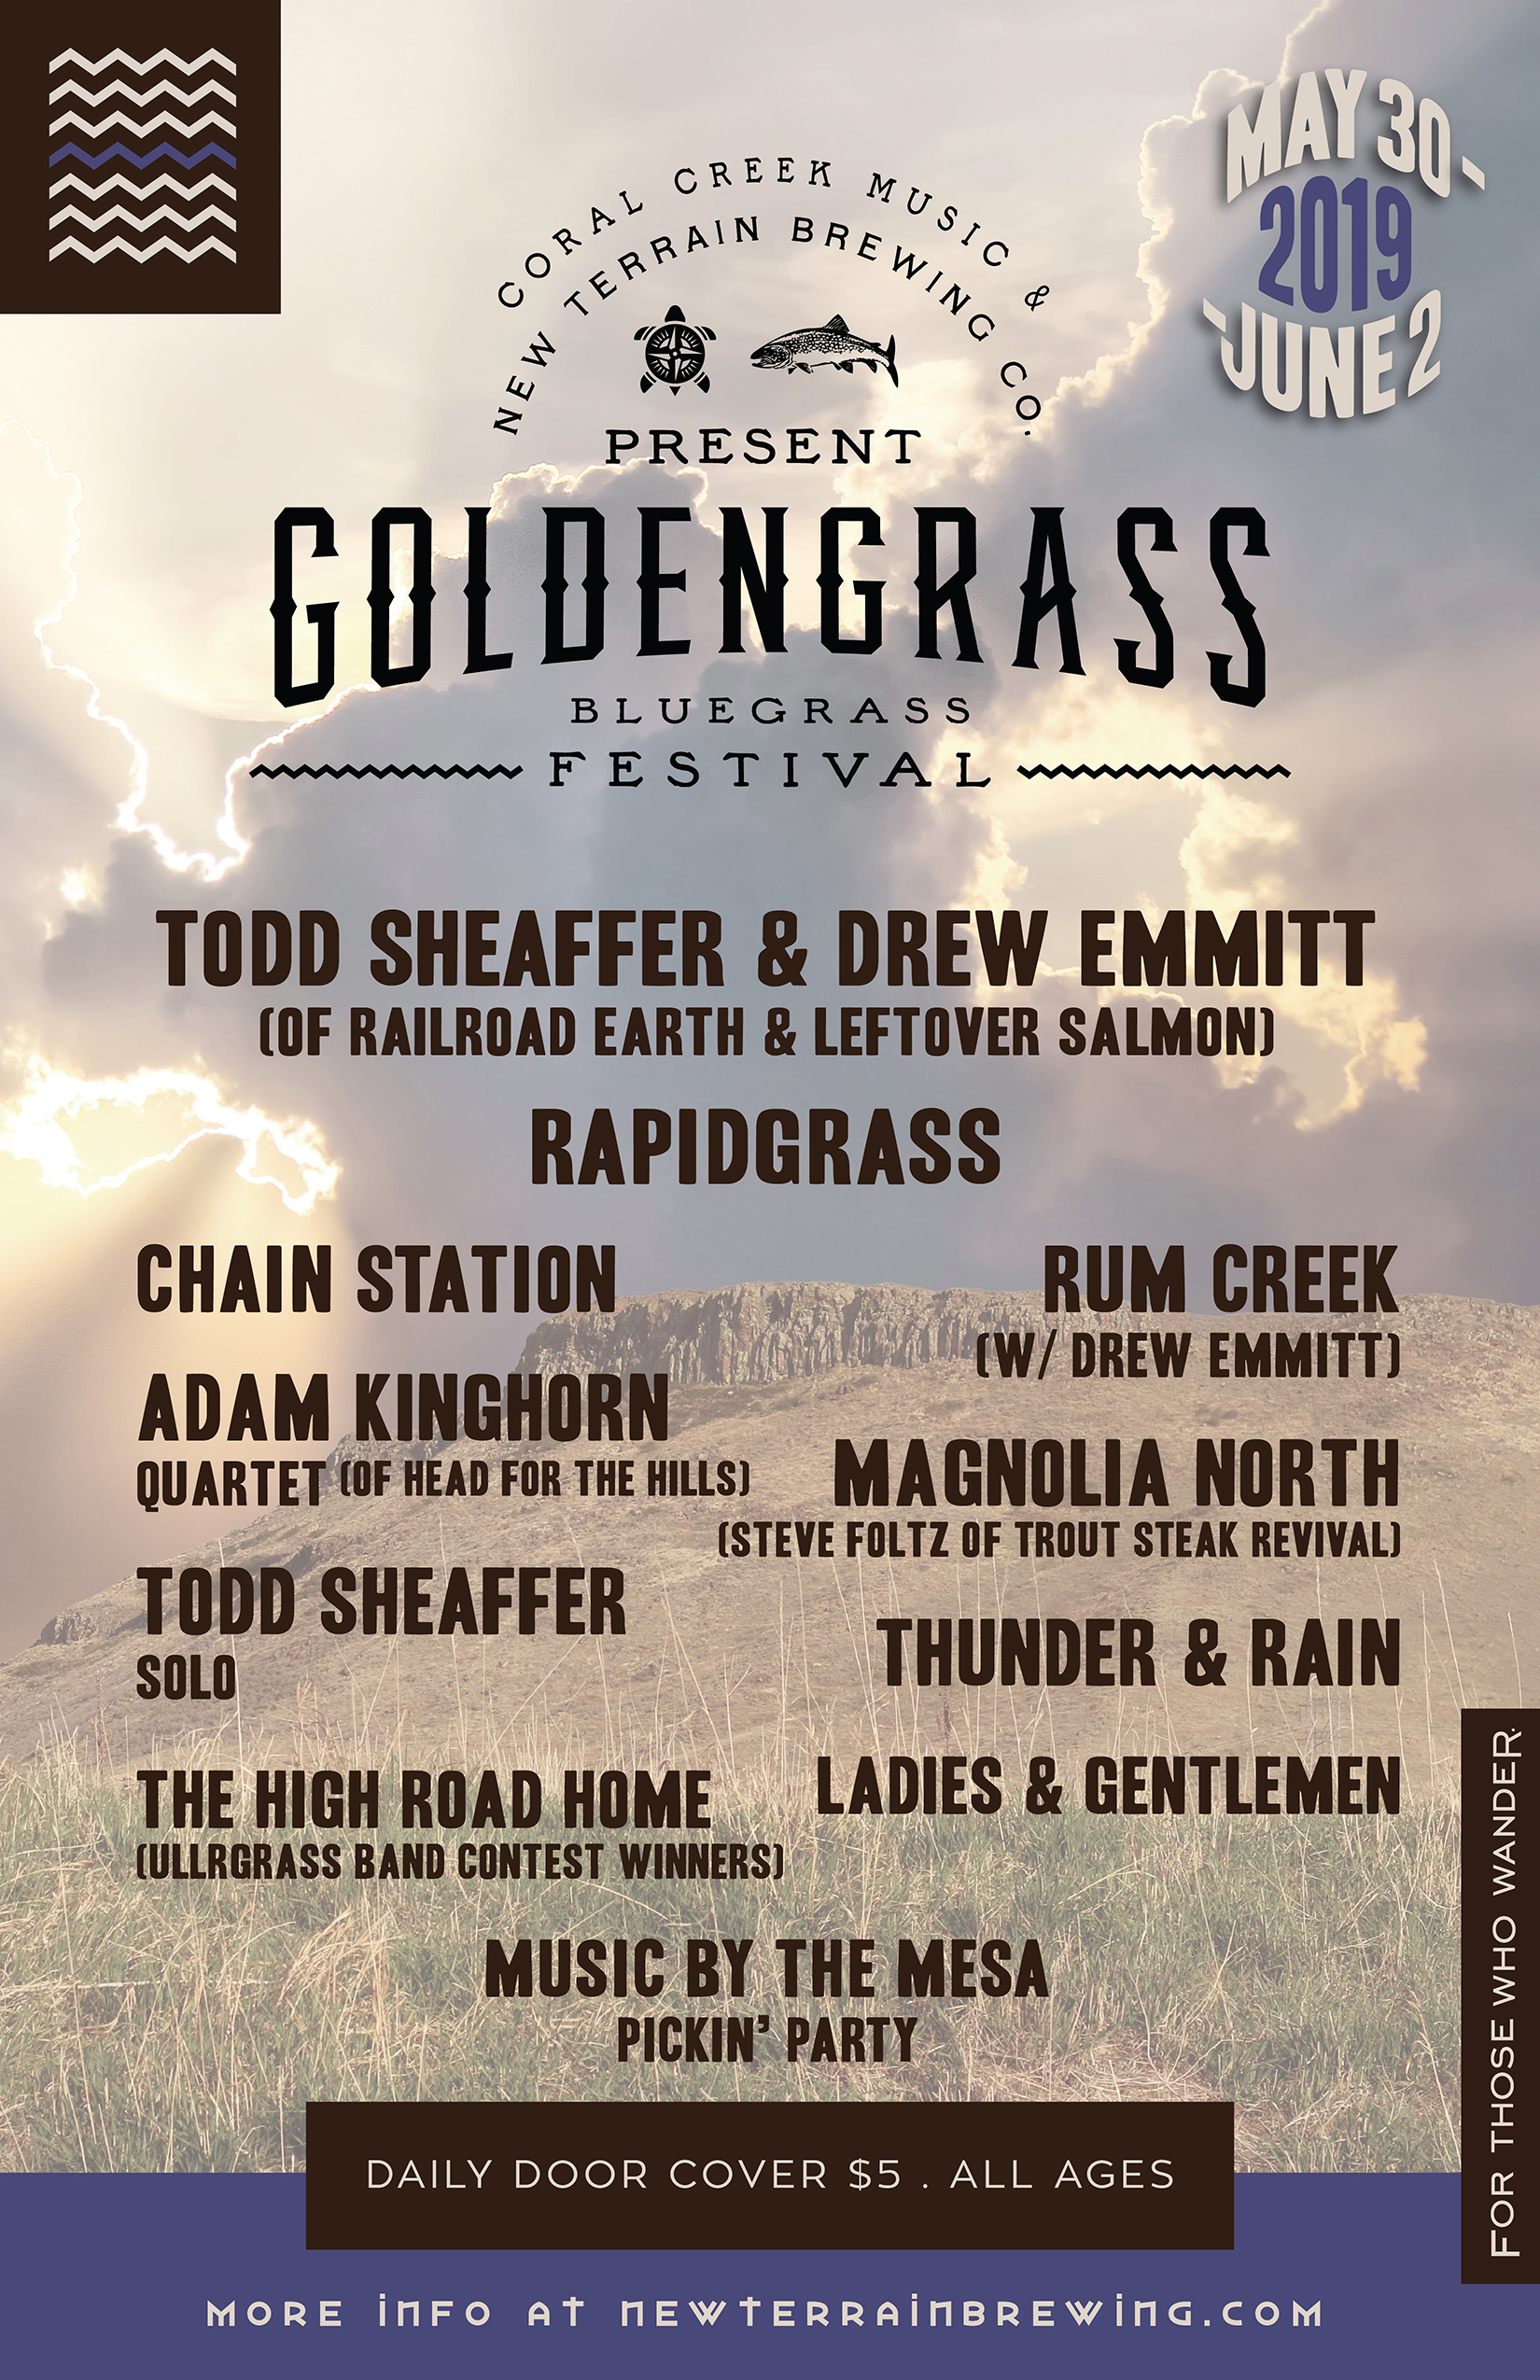 NTBC_GoldenGrass_Festival_11x17_v11Final_small.jpg